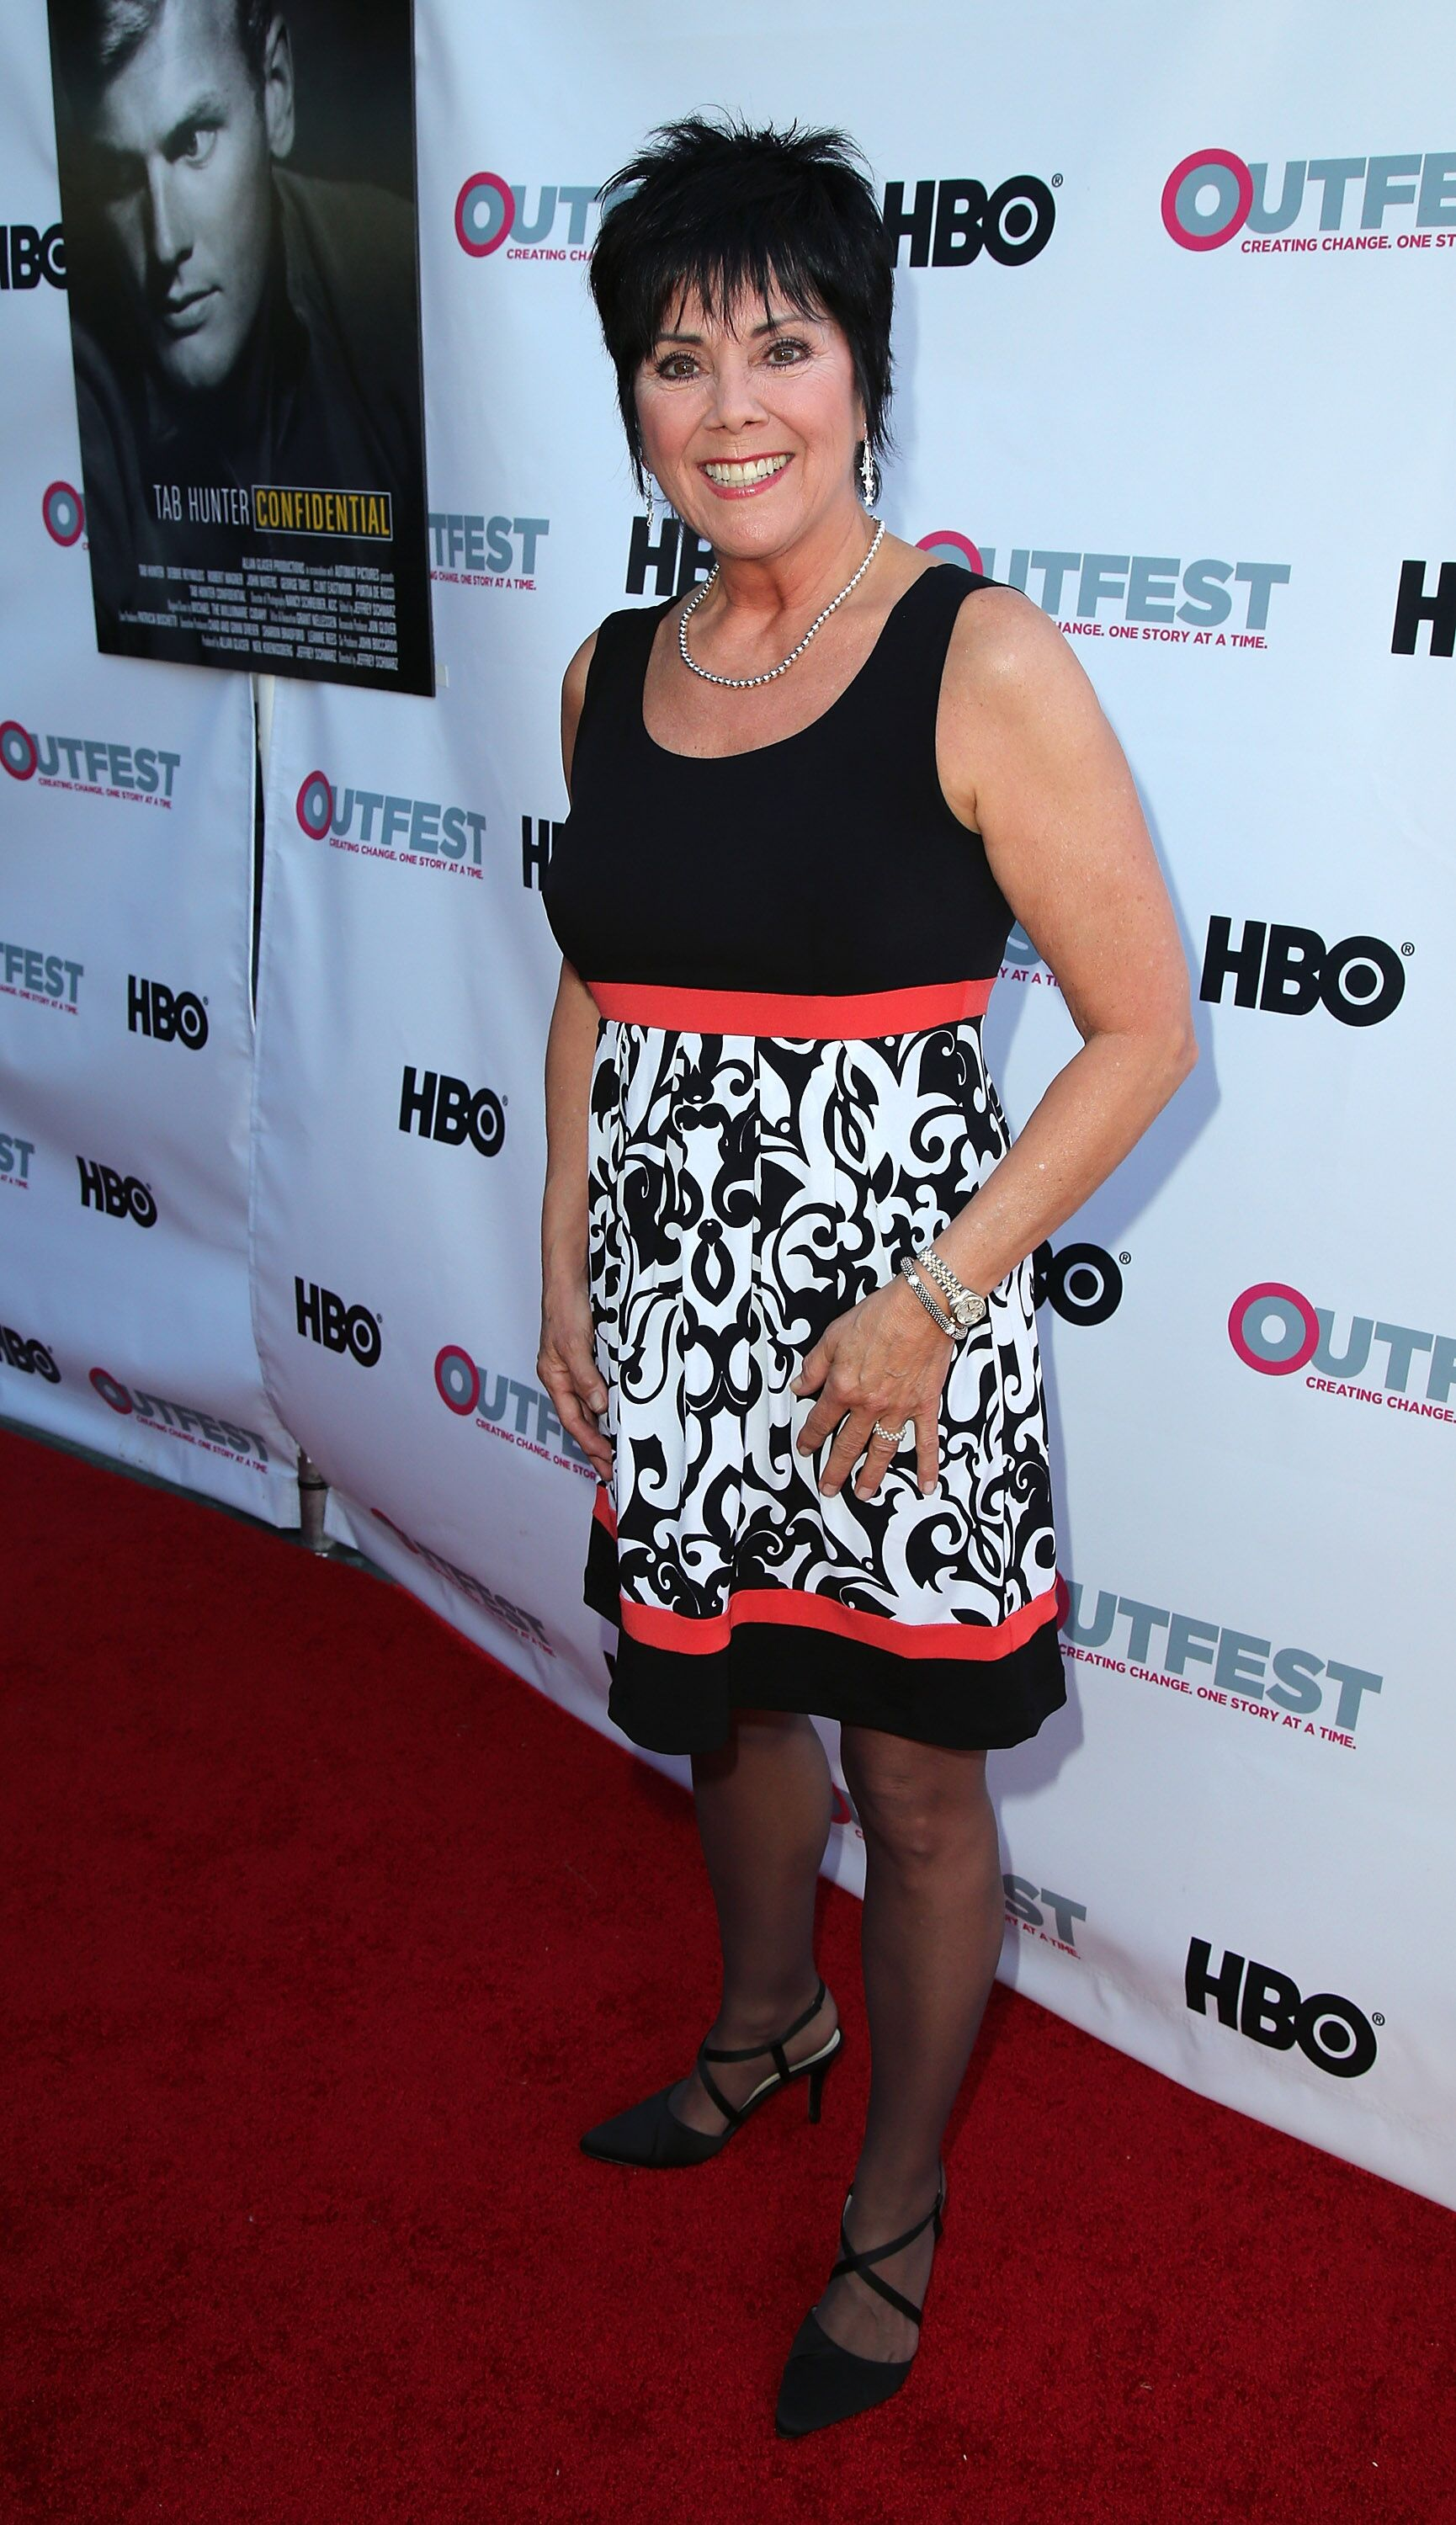 Joyce DeWitt in HBO's Outfest.   Source: Getty Images